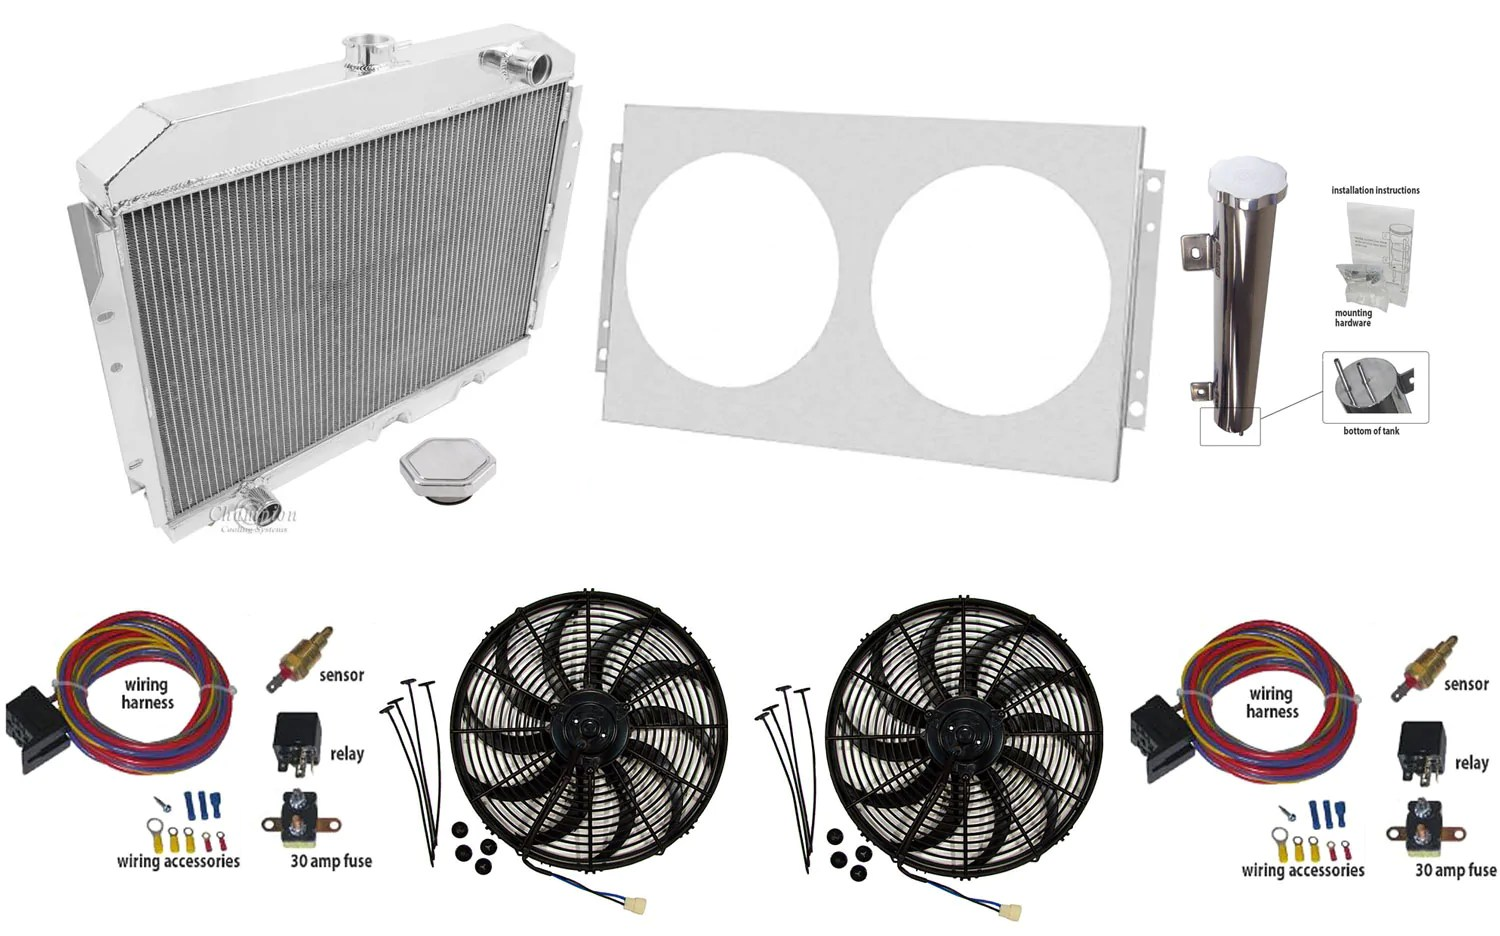 1958 1988 amc champion 3 row not oe fit aluminum radiator master kit cools up to 800hp  [ 1500 x 936 Pixel ]